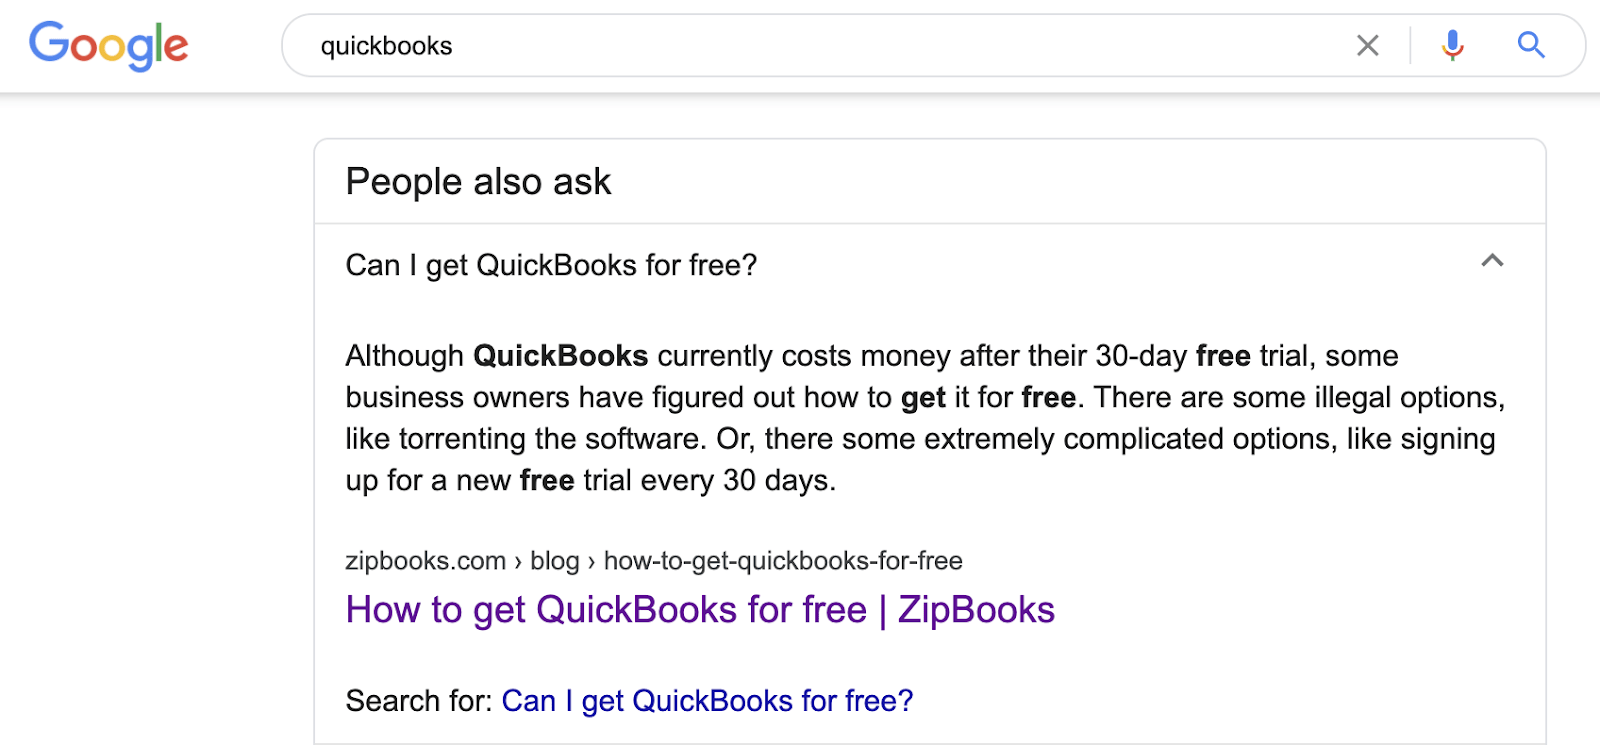 search for 'QuickBooks'